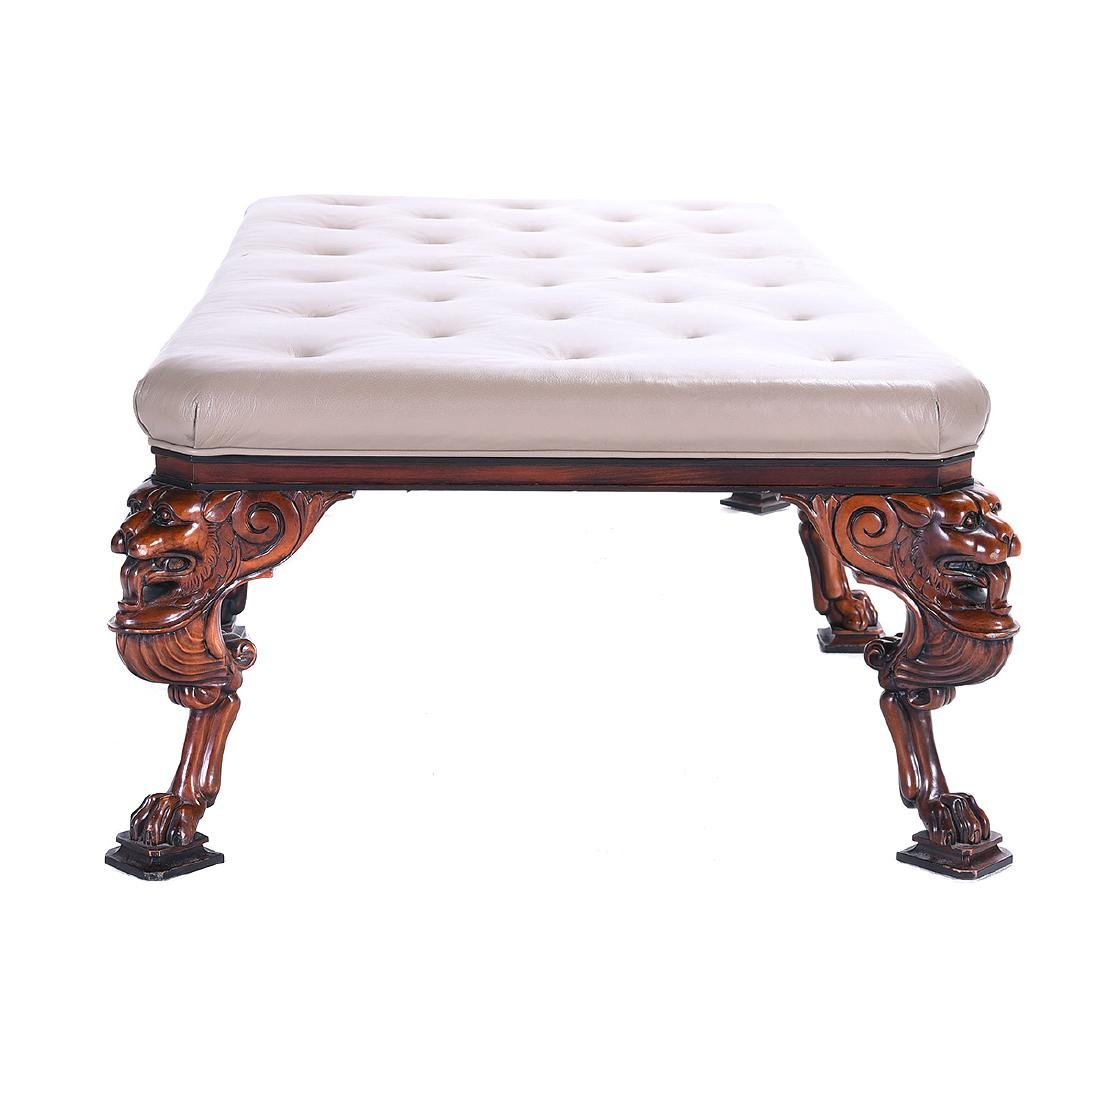 George II Style Hardwood Upholstered Leather Tufted - 4